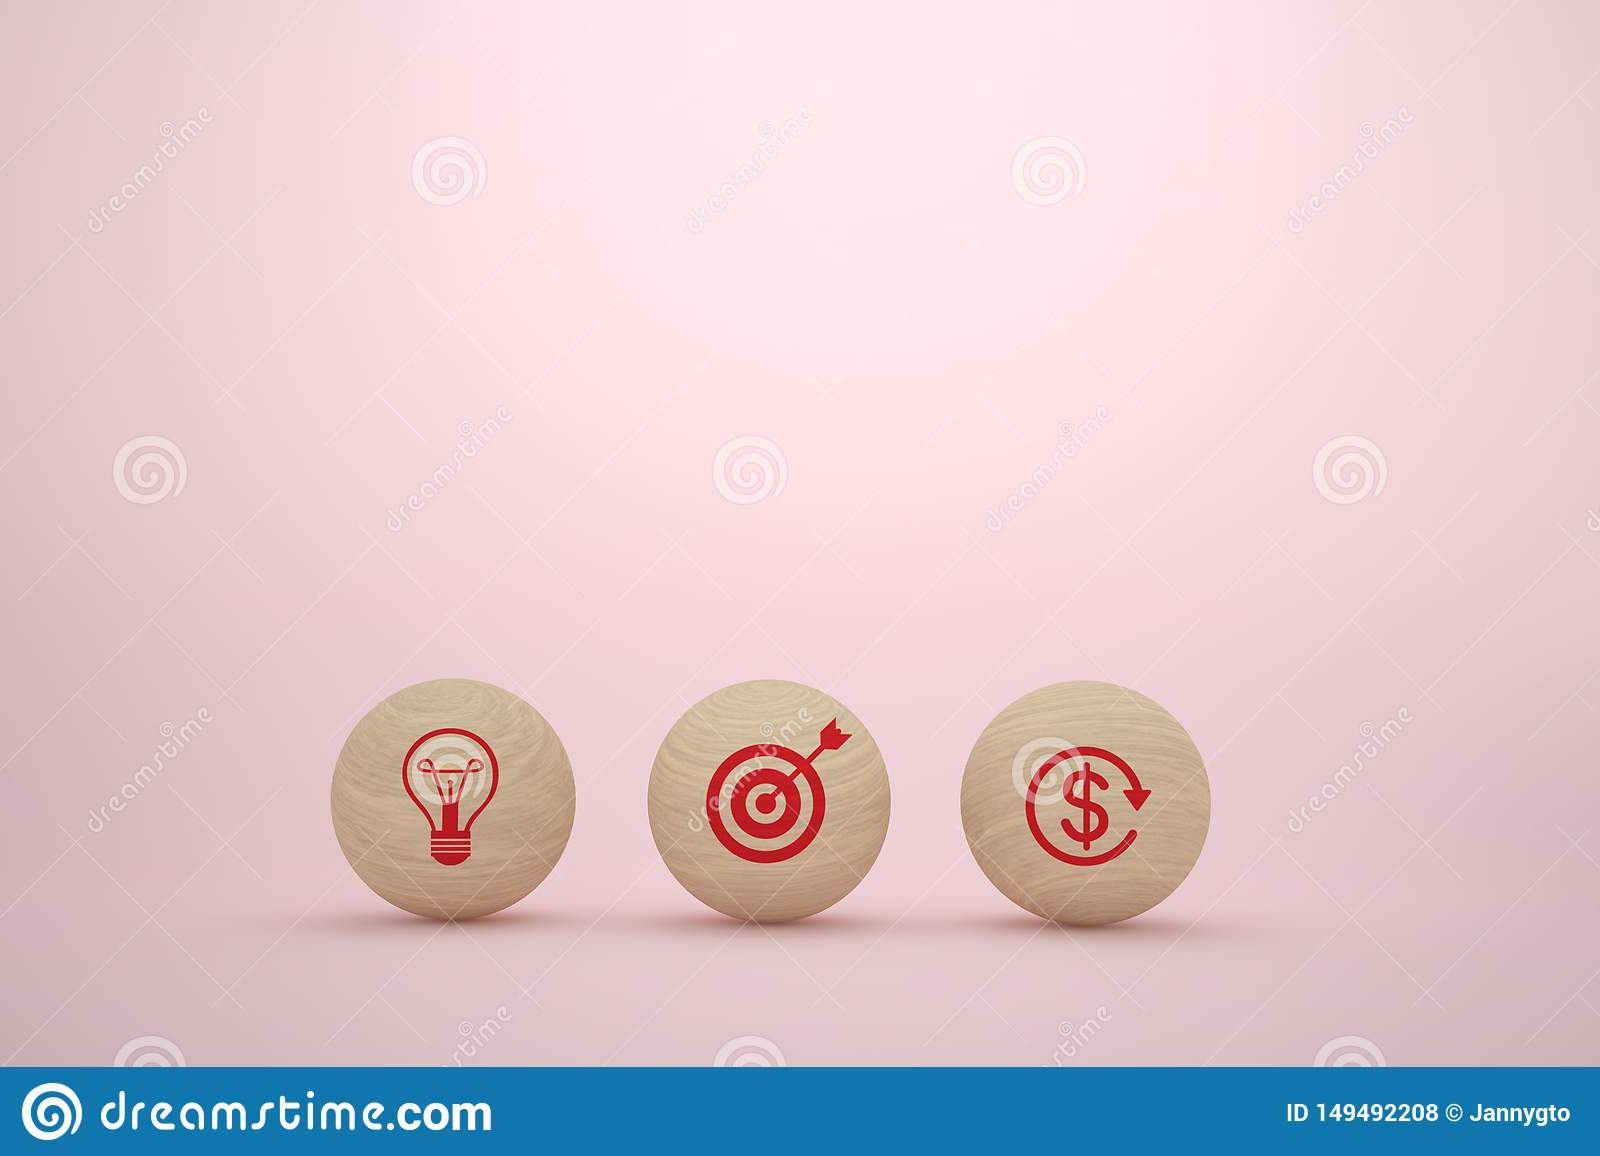 Business plan concept with wooden sphere with icon business strategy and action plan on pink background.